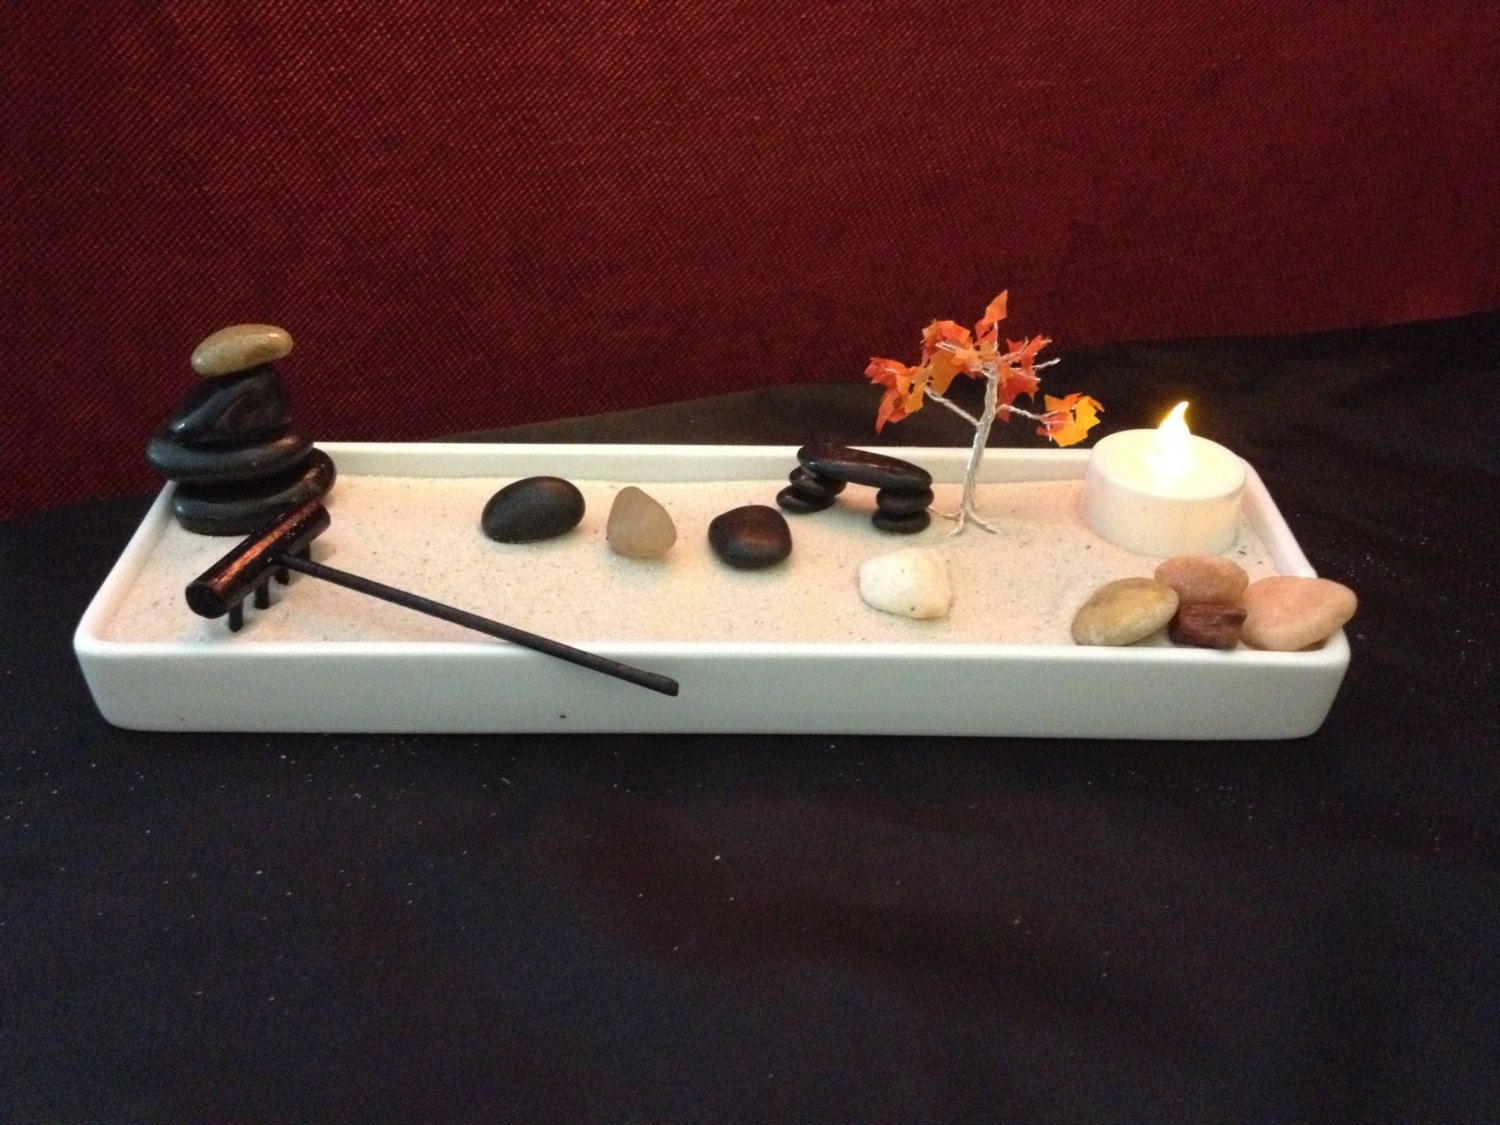 Zen garden with rectangle ceramic container by threestackedstones on